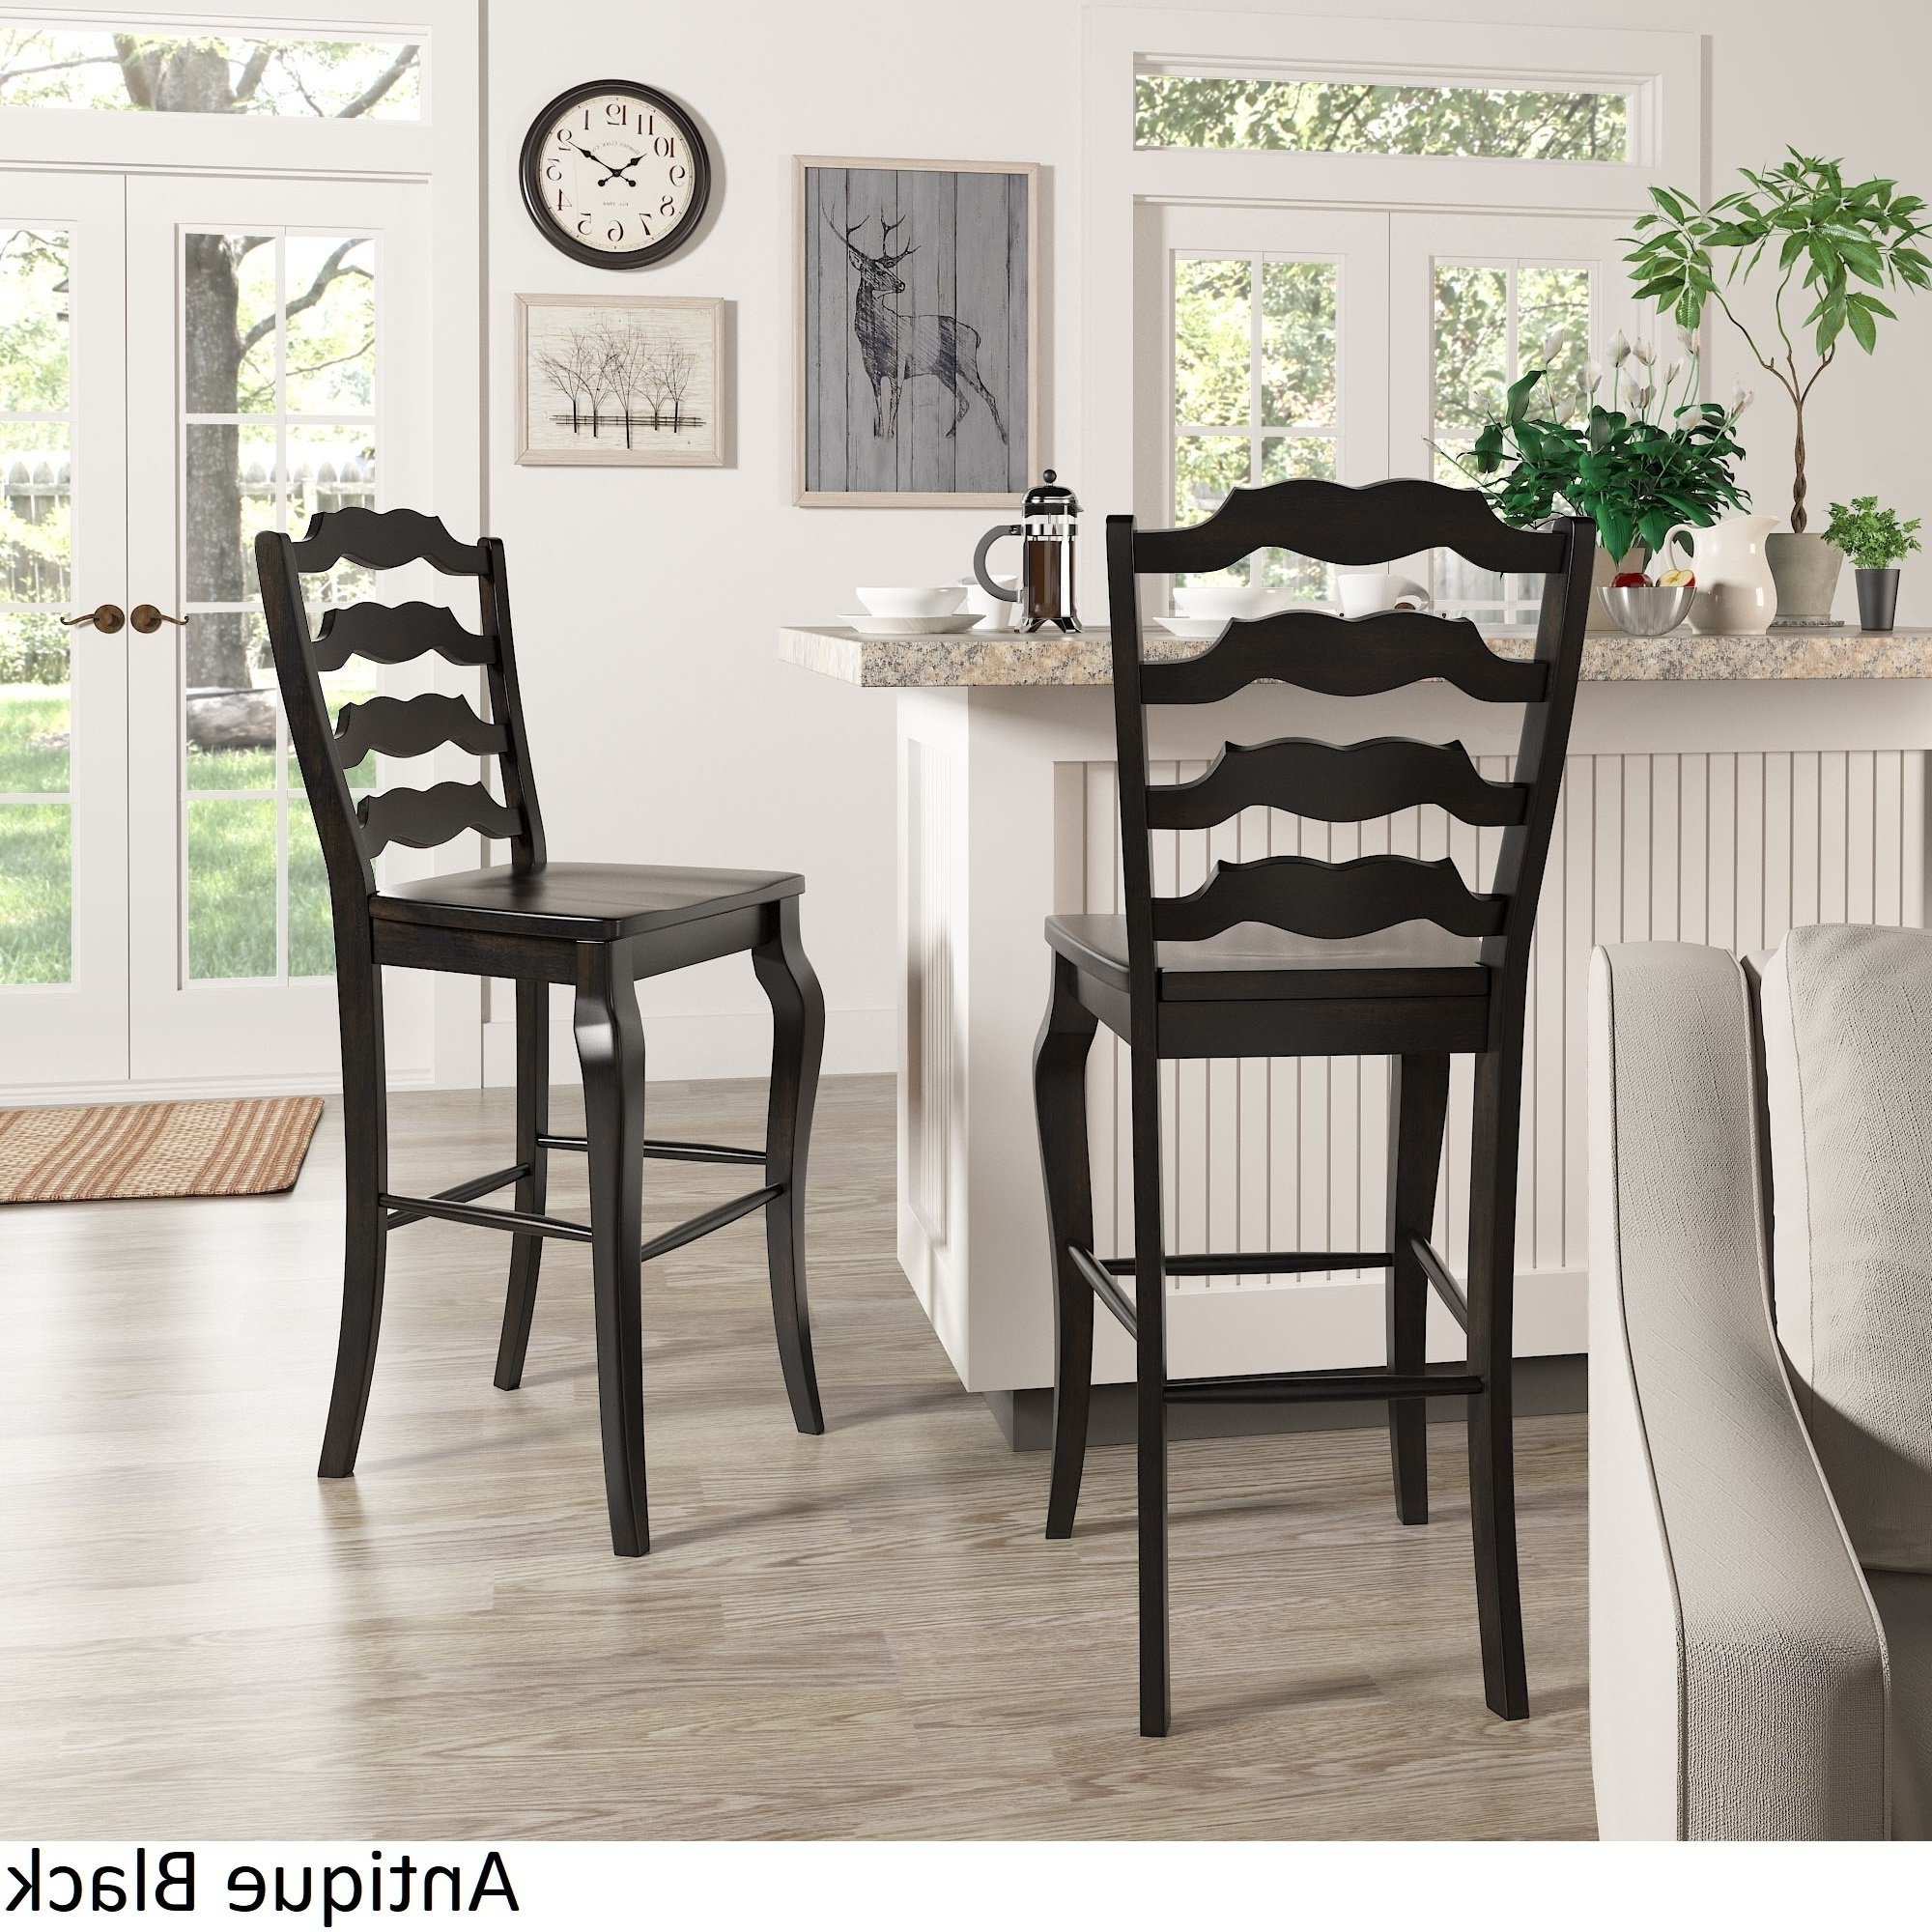 Most Popular Candice Ii 5 Piece Round Dining Sets With Slat Back Side Chairs For Shop Eleanor French Ladder Back Bar Height Chairs (Set Of 2) (View 13 of 25)